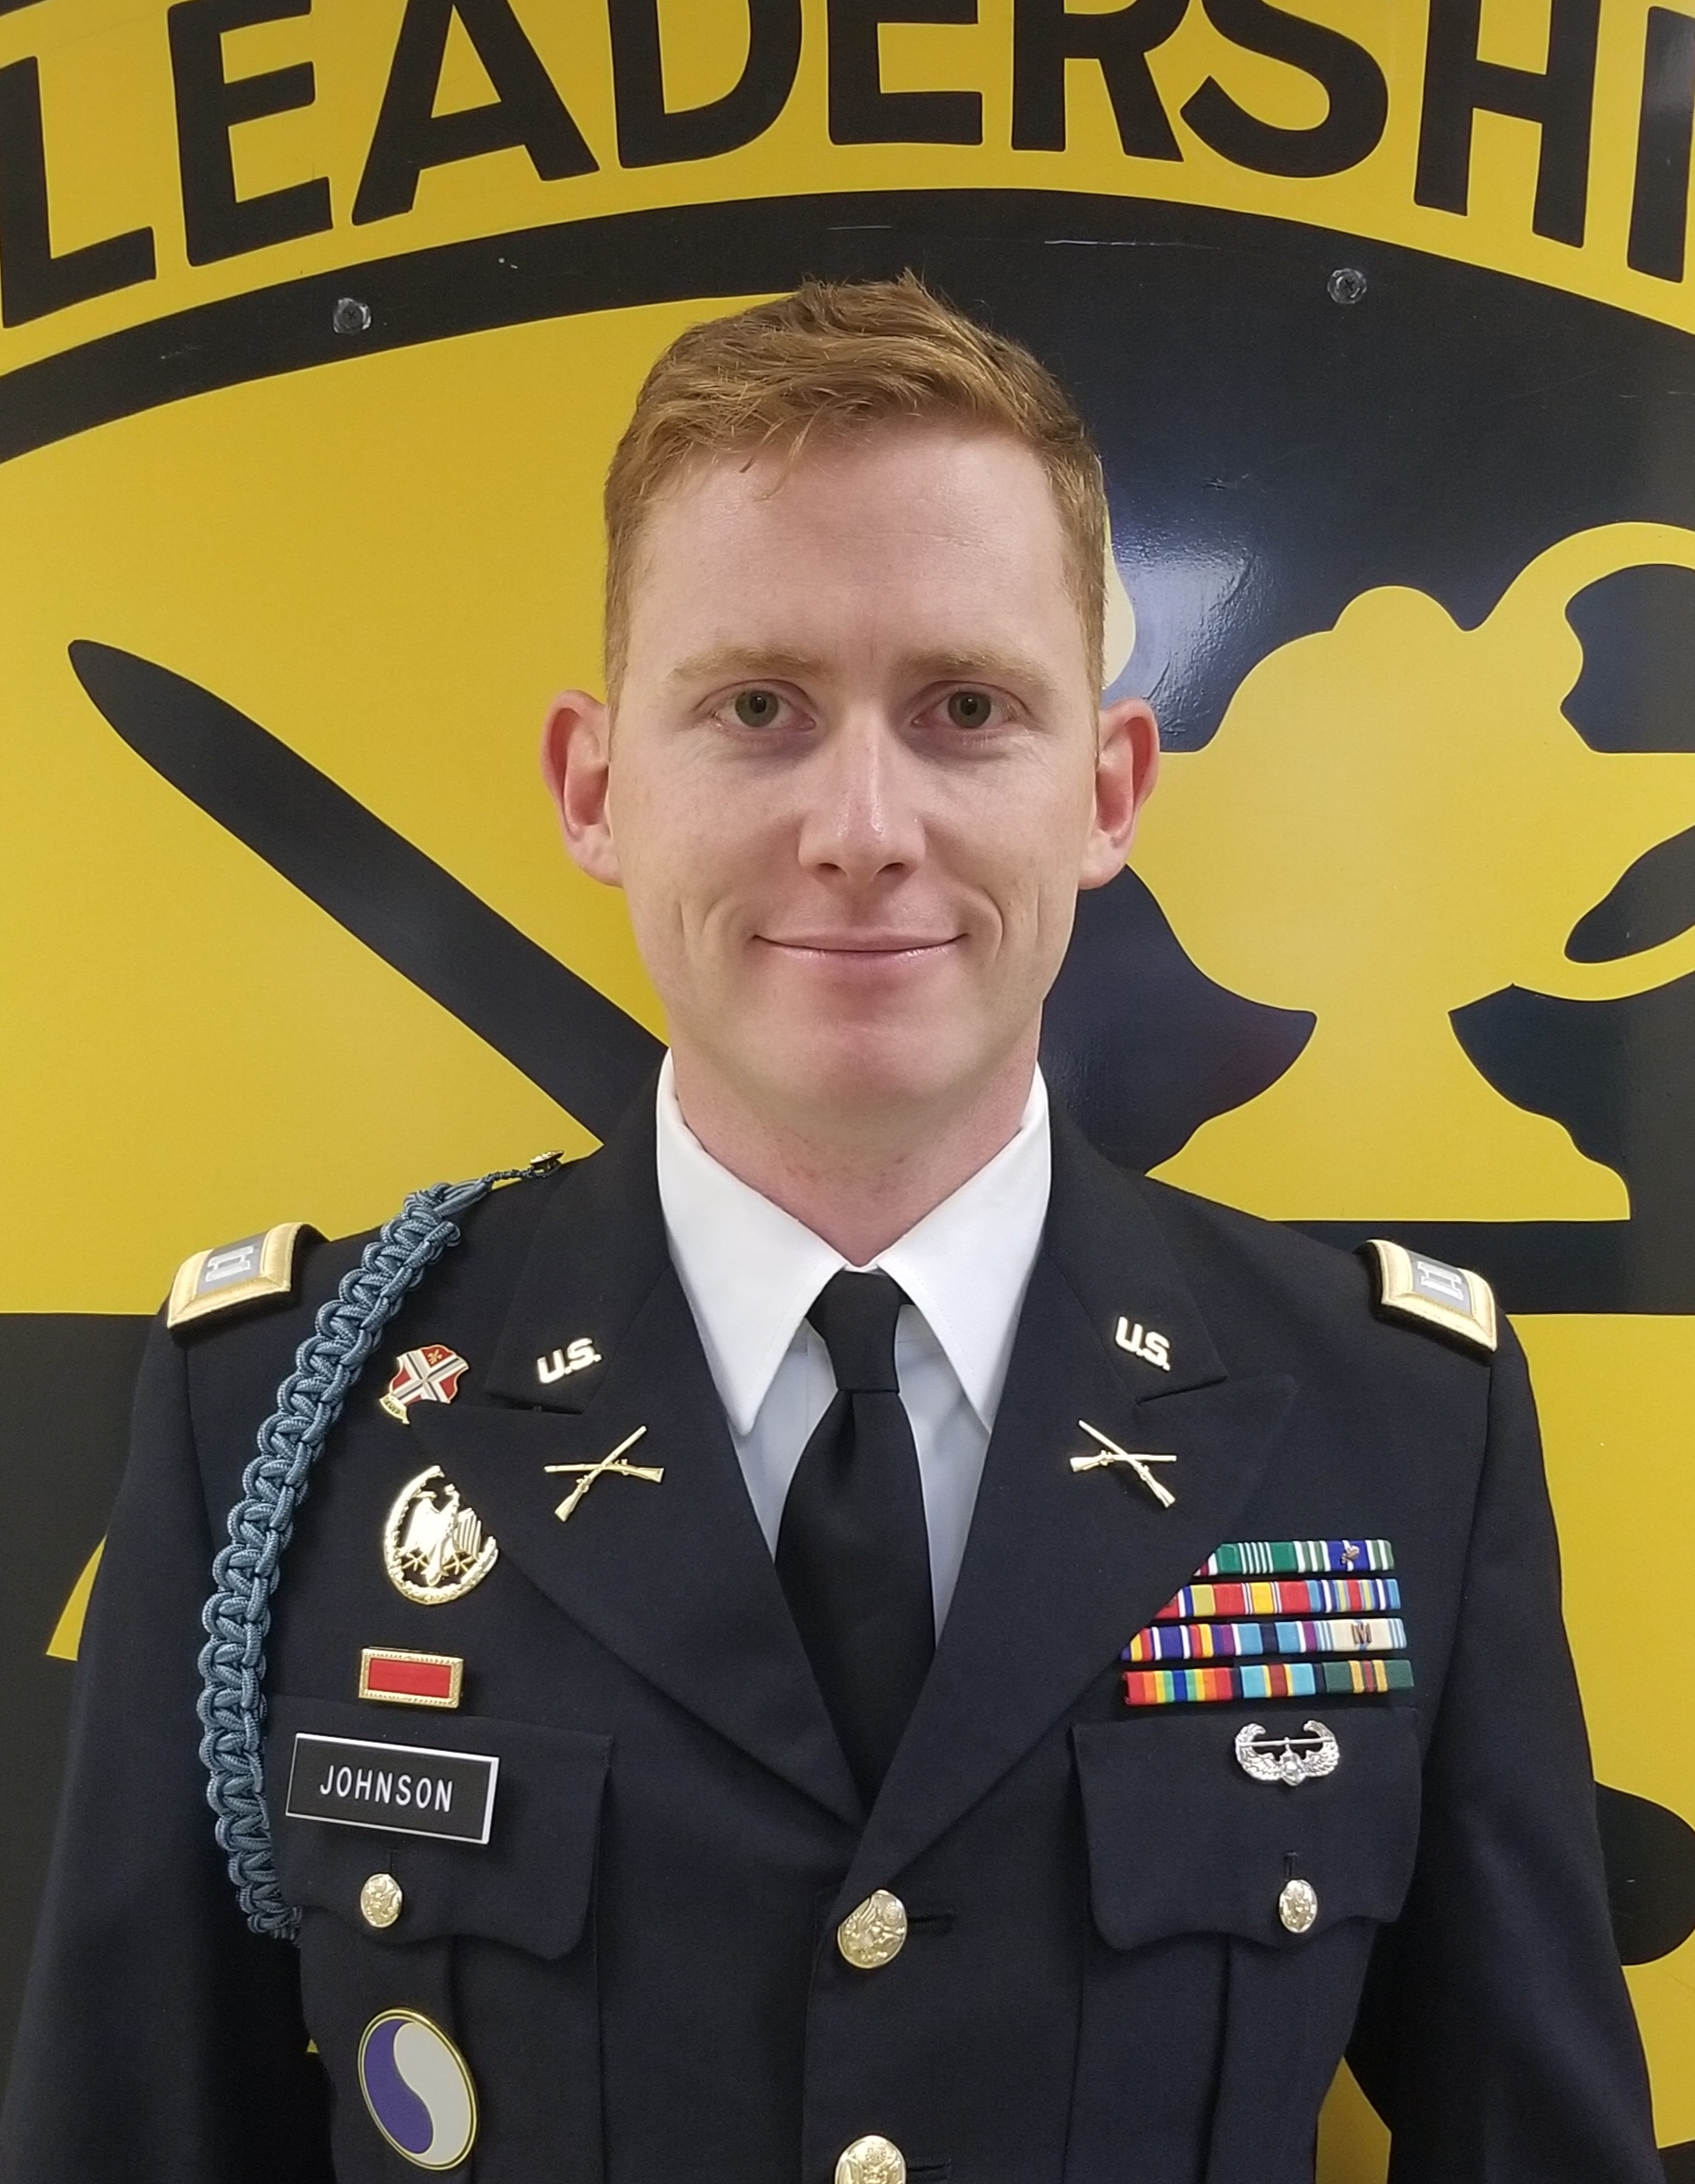 CPT Johnson, Asst. Professor of Military Science, Military Science IV